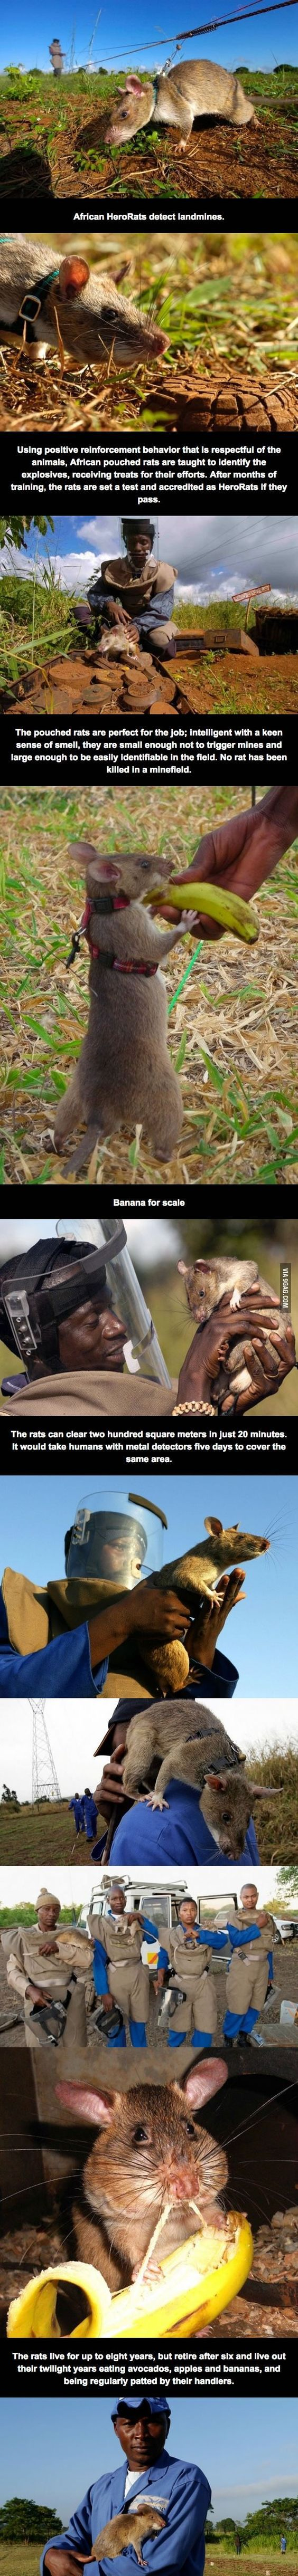 The real heroes you don't hear about. Not as cute as most rats but it's too amazing to pass up...